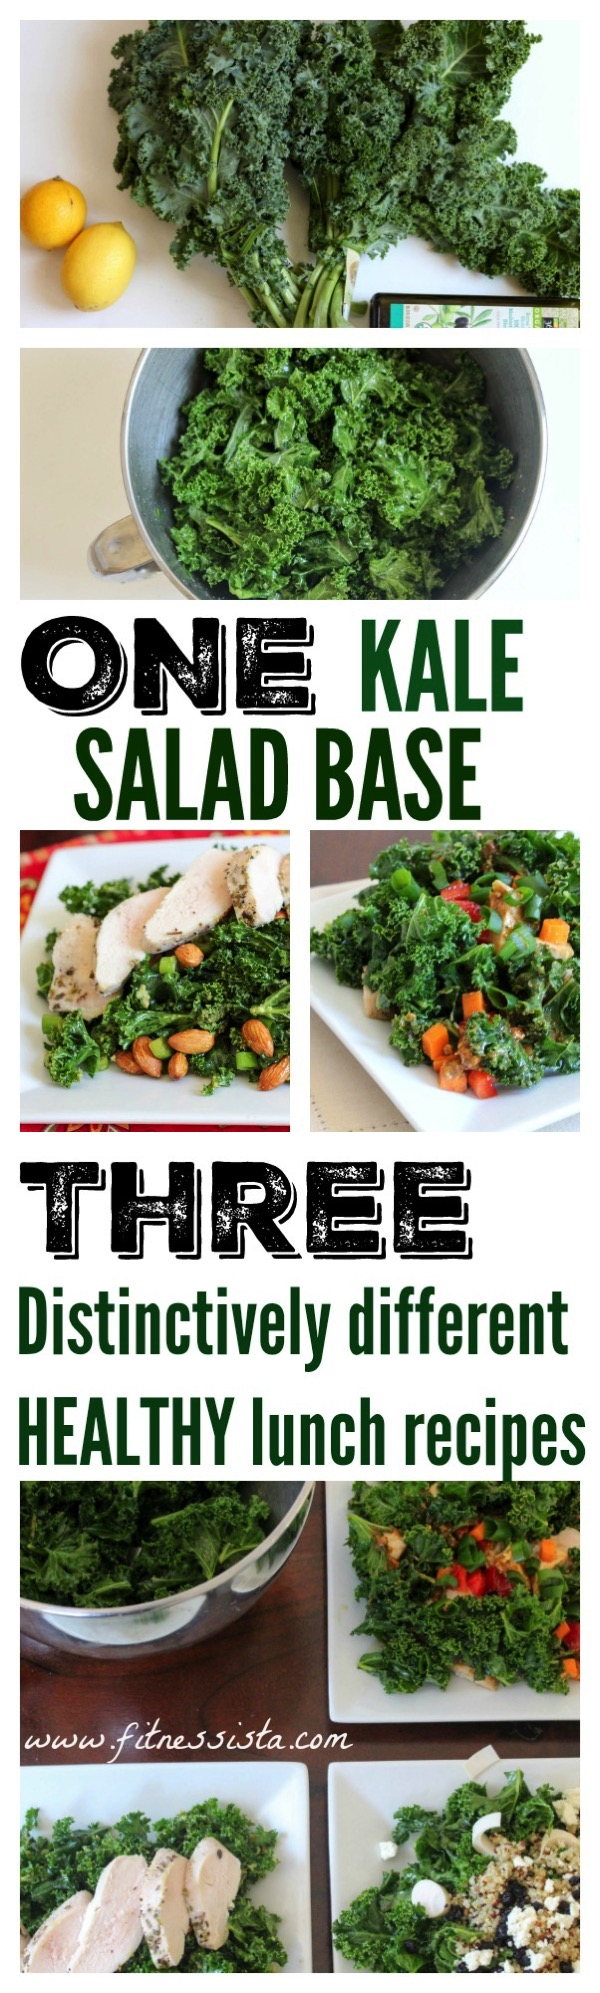 One kale salad base three different salads